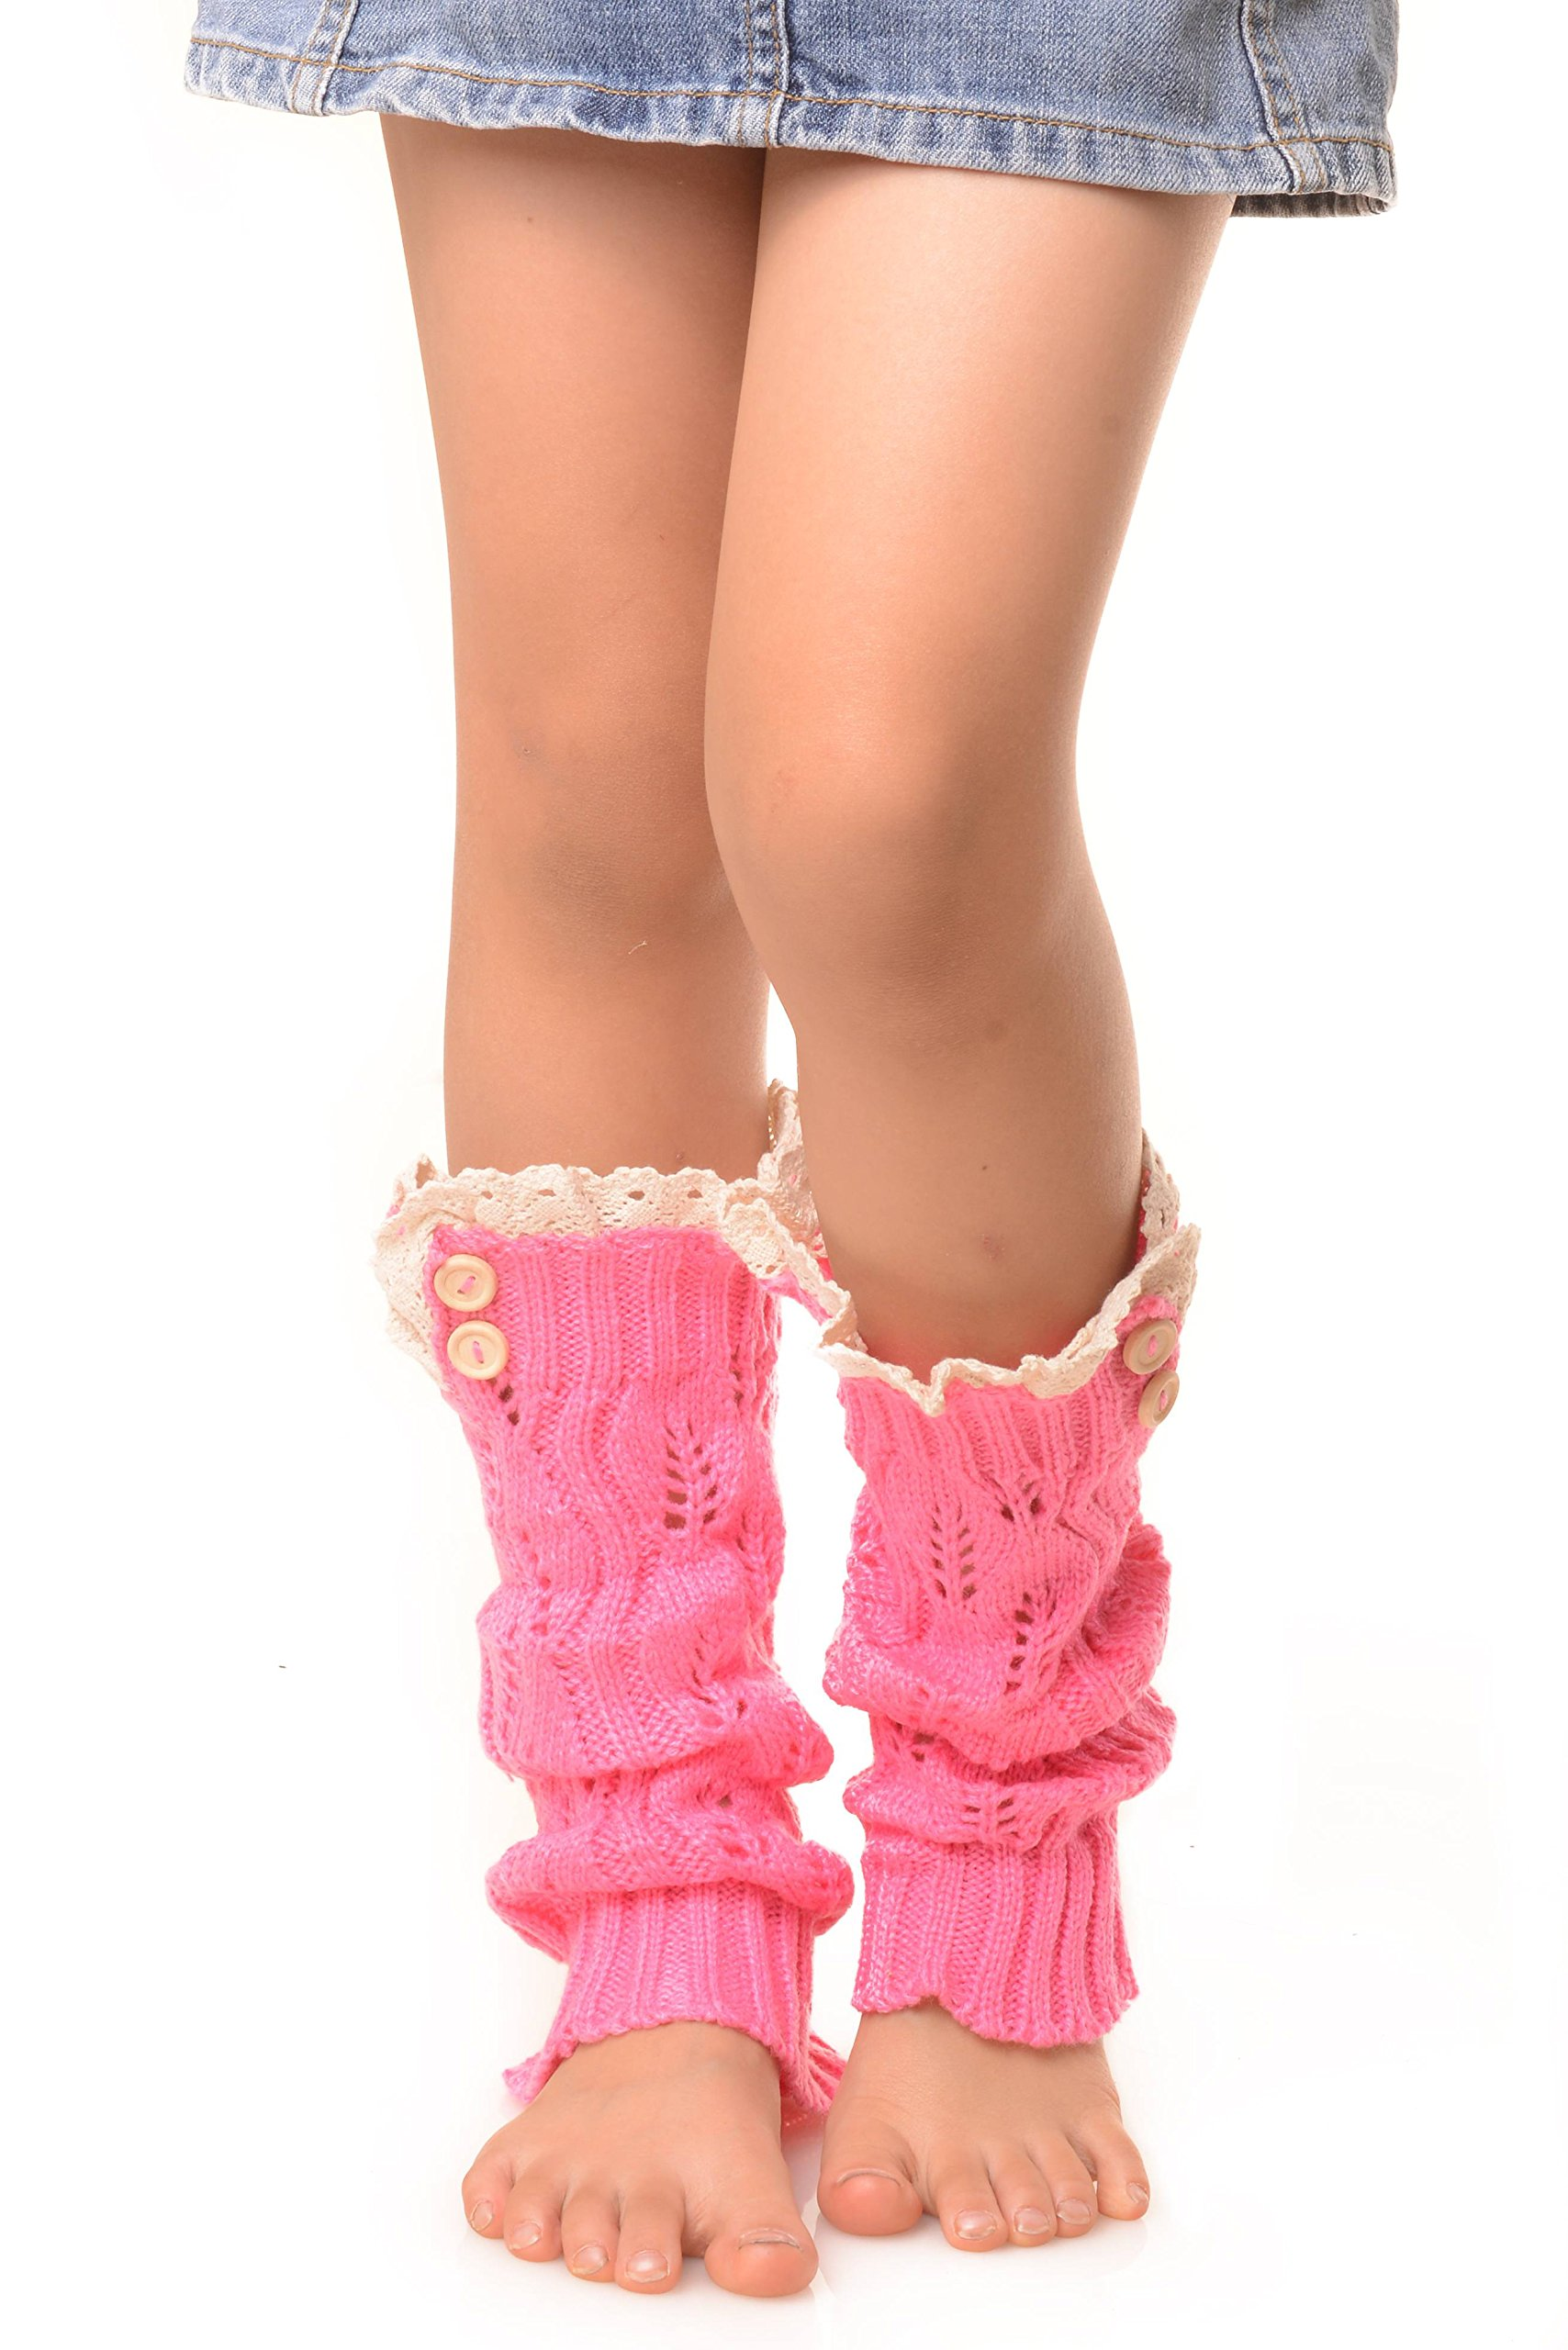 ICONOFLASH Girl's Sweater Knit Leg Warmers with Lace and Button Detail, Fuchsia